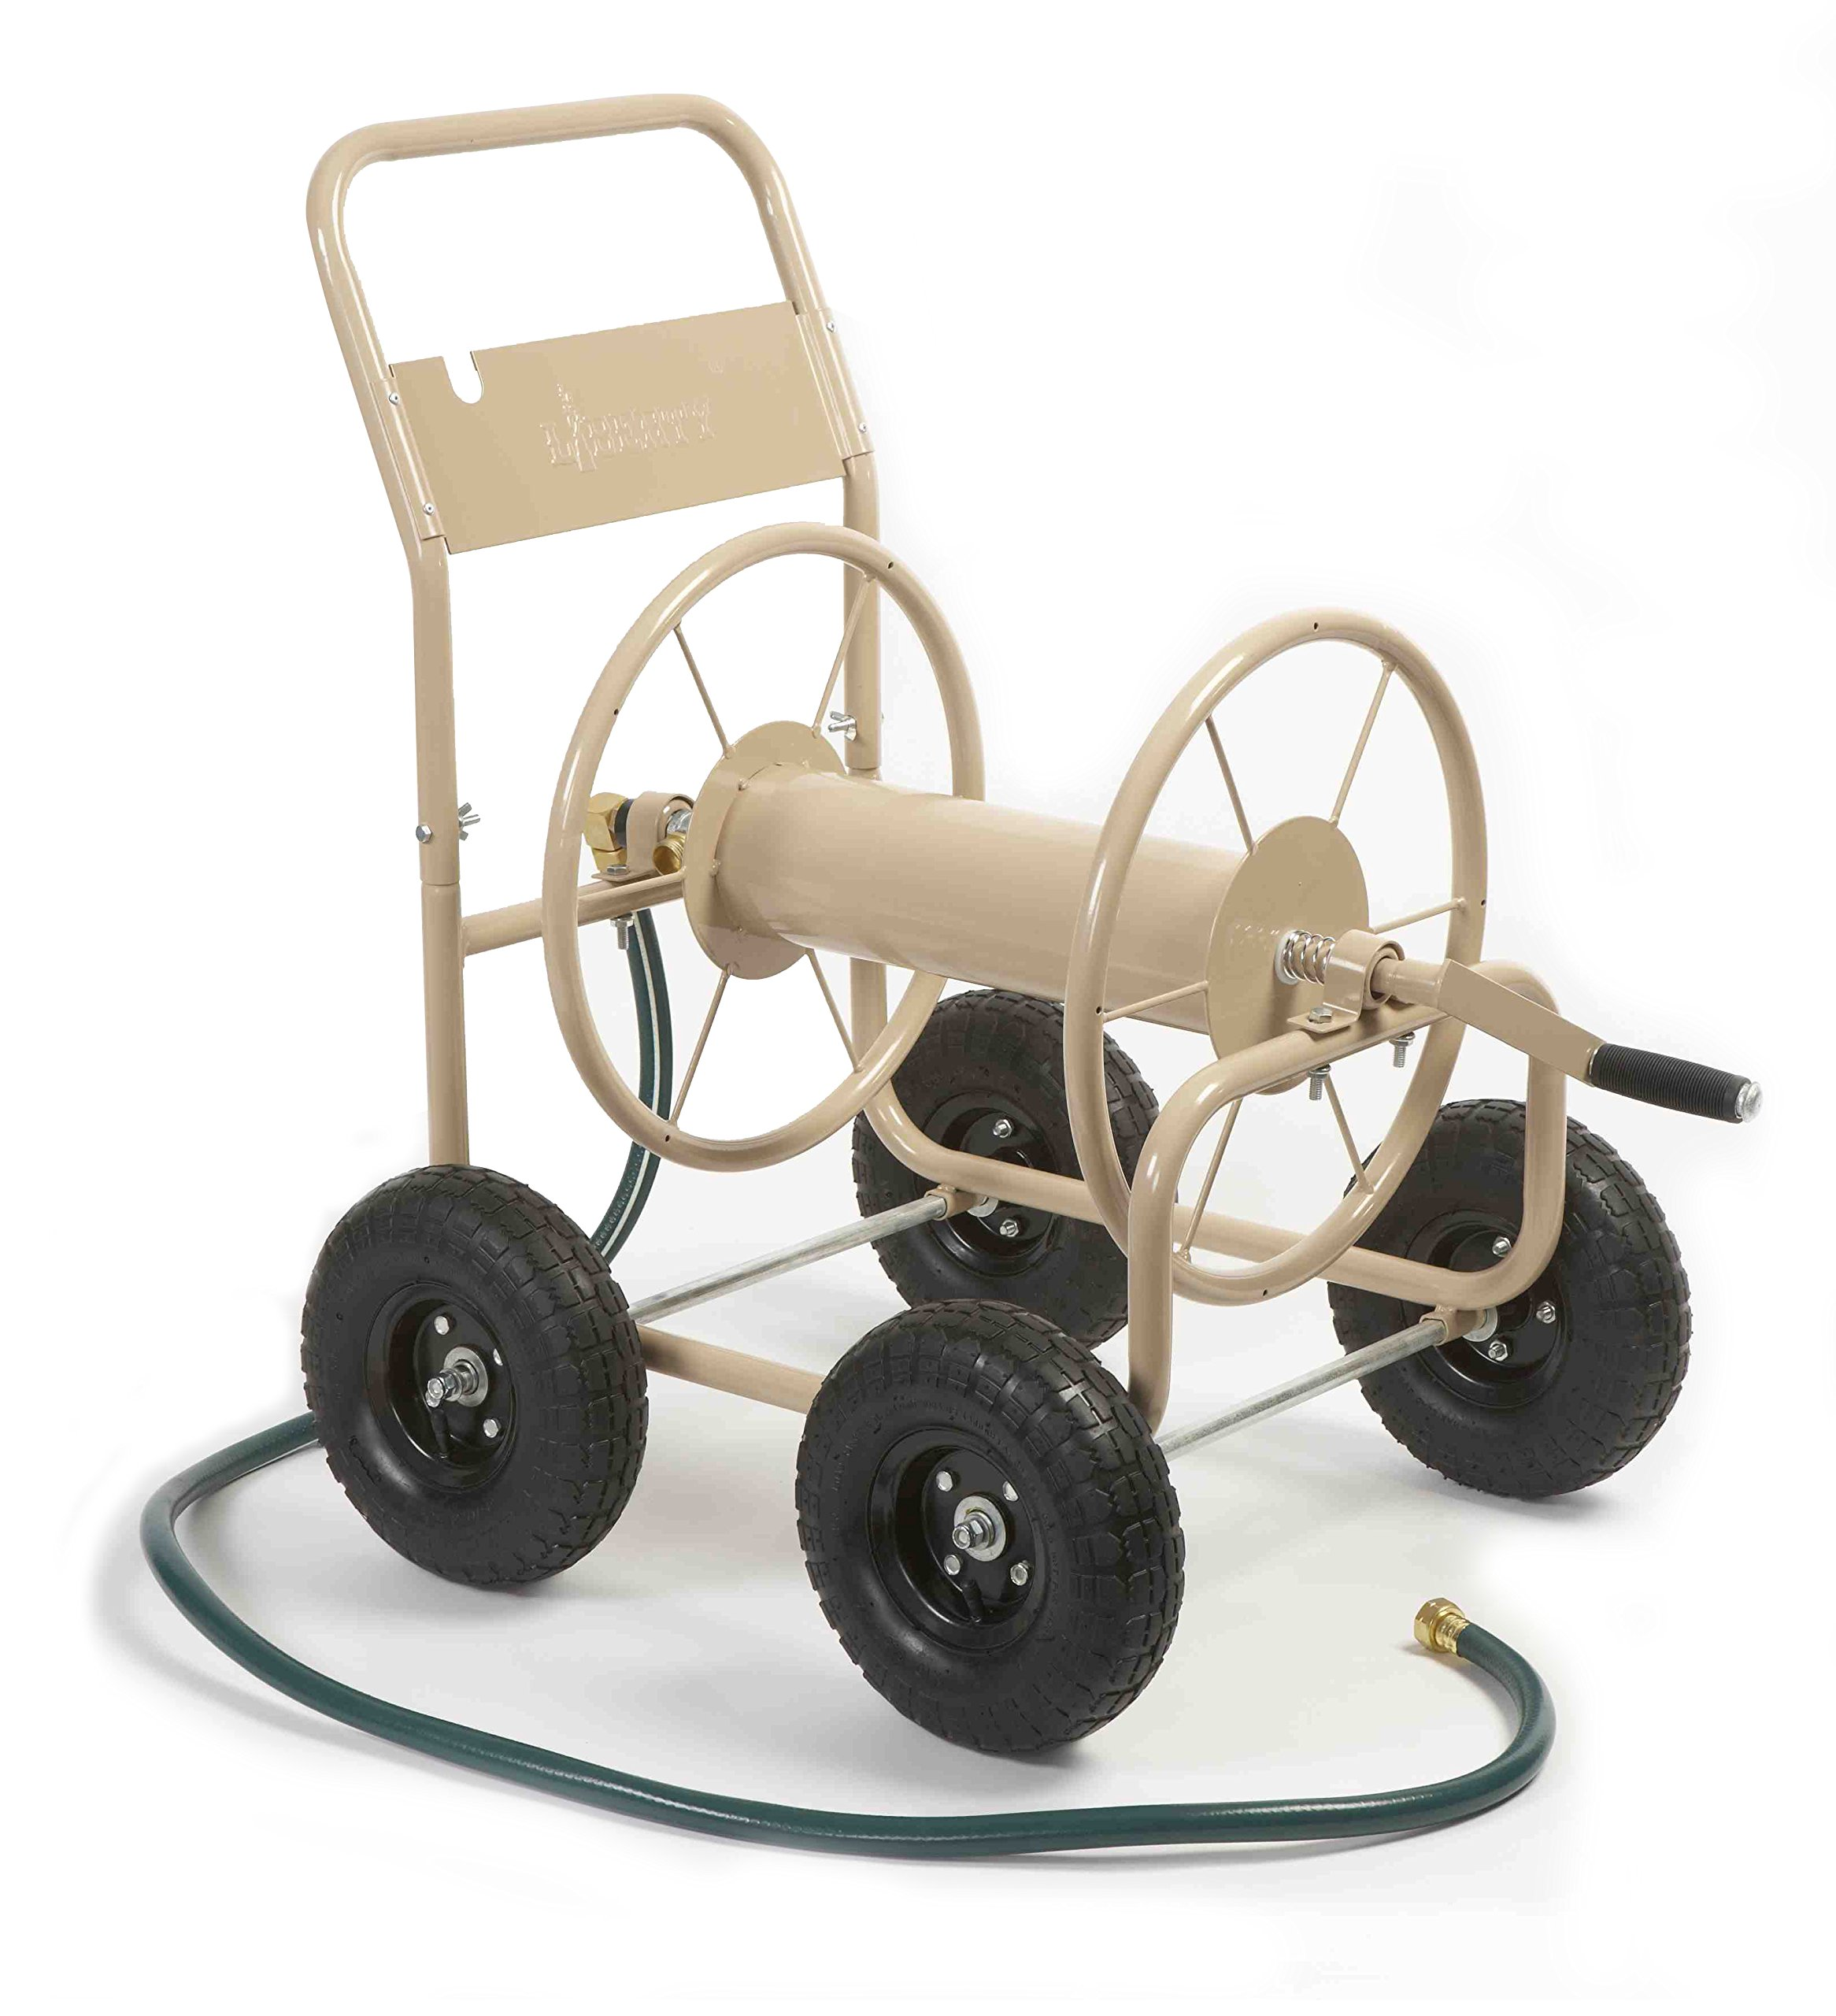 Liberty Garden Products 870-M1-2 Industrial 4-Wheel Garden Hose Reel Cart, Holds 300-Feet of 5/8-Inch Hose - Tan by Liberty Garden Products (Image #1)